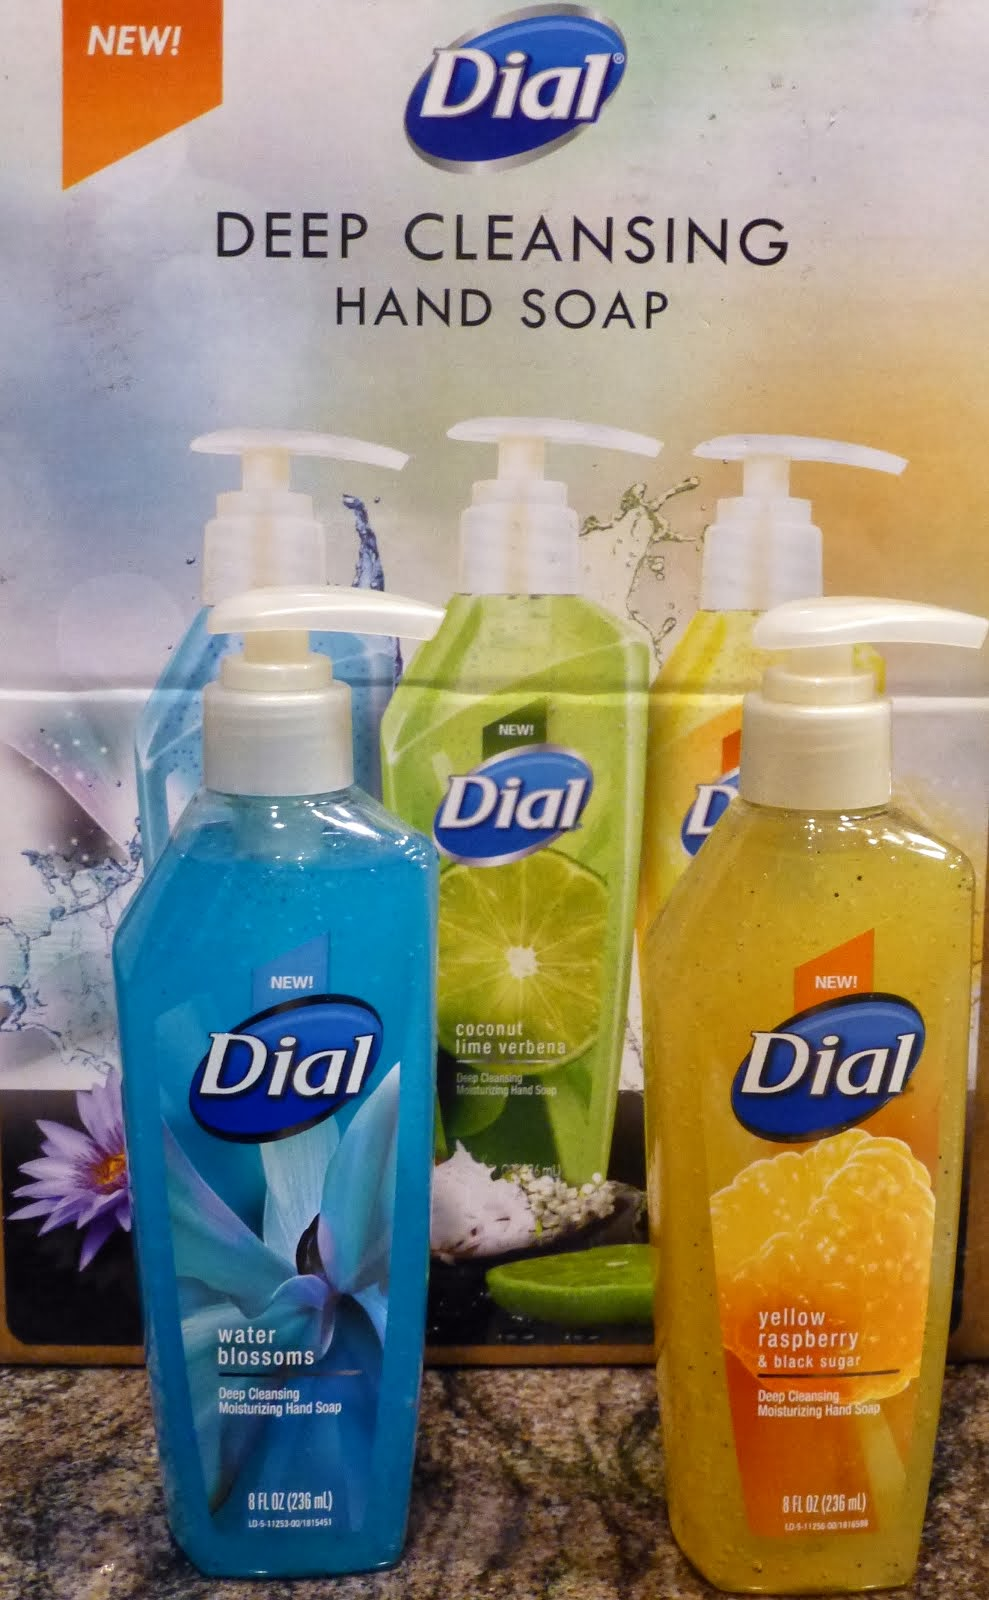 Enter To Win Dial Deep Cleansing Hand Soap!